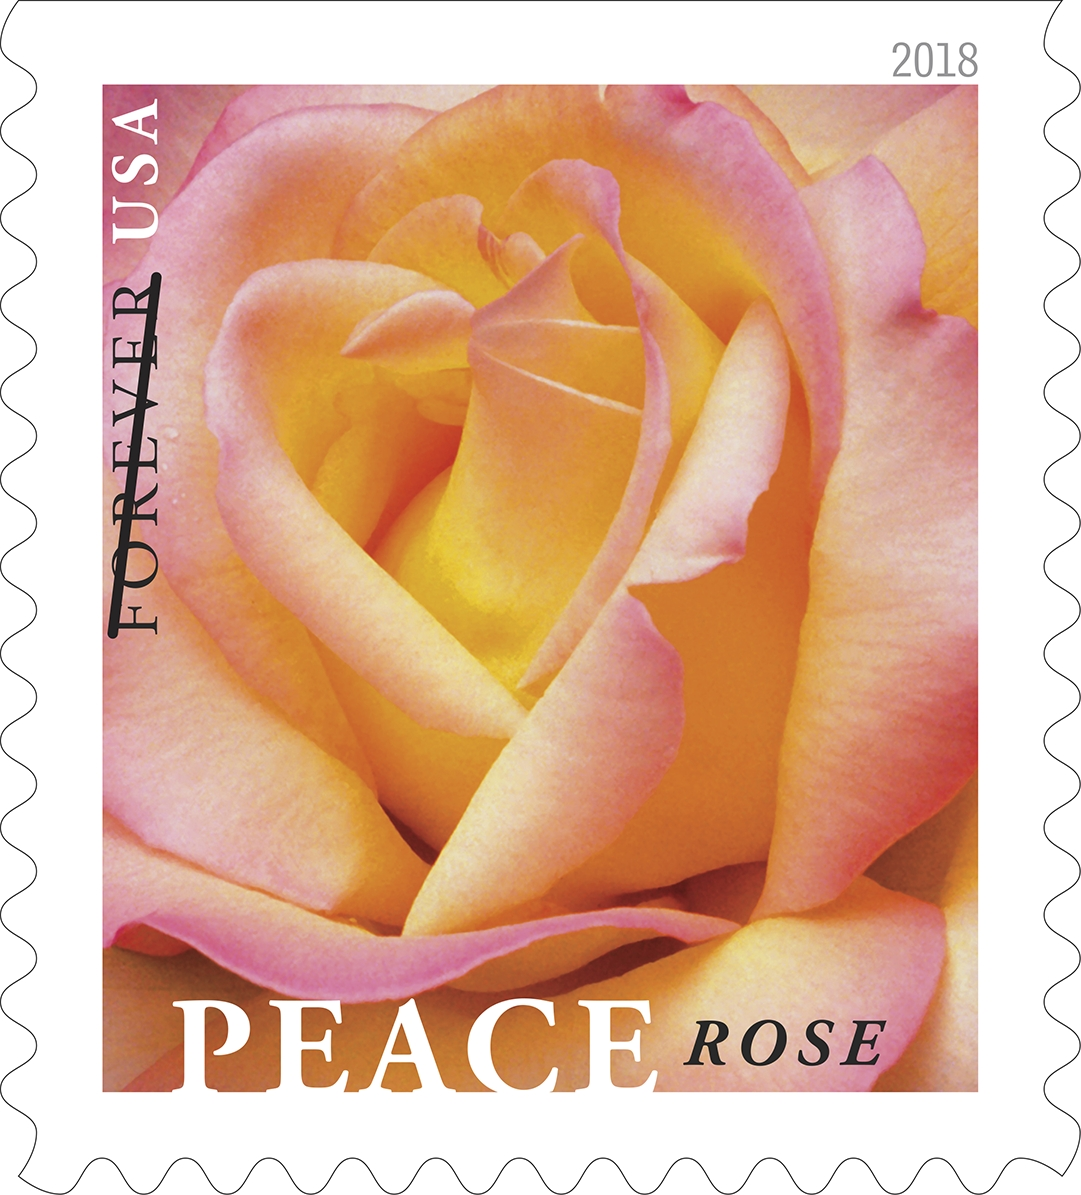 Peace Rose: Peace Rose celebrates one of the most popular roses of all time. The peace rose revolutionized hybrid tea roses with its unique coloring, hardiness and disease resistance. (USPS)